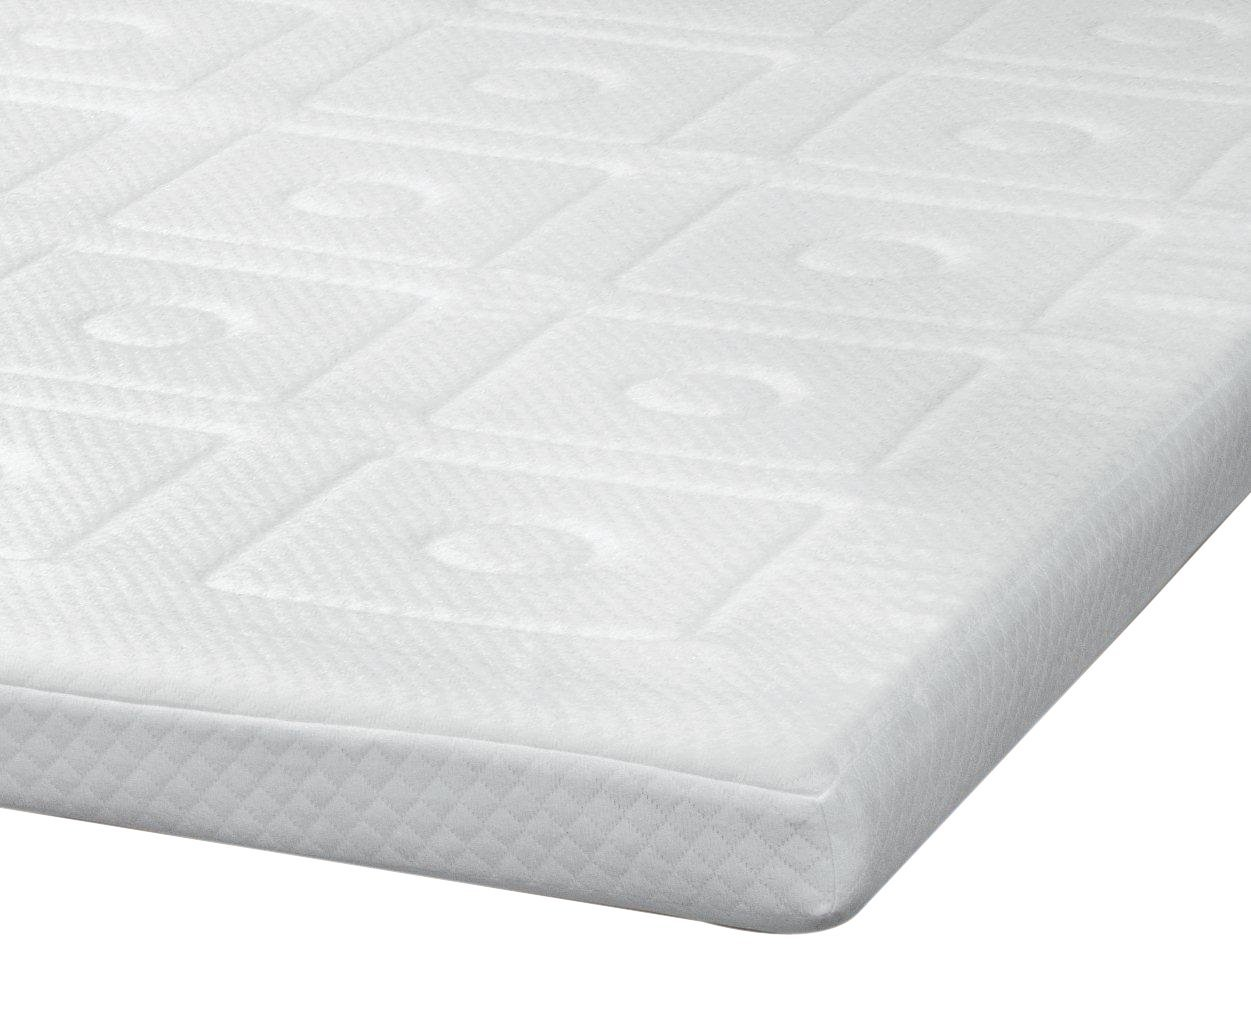 SensorPEDIC Luxury Extraordinaire 3-Inch Quilted Memory Foam Mattress Topper, Twin Size, White